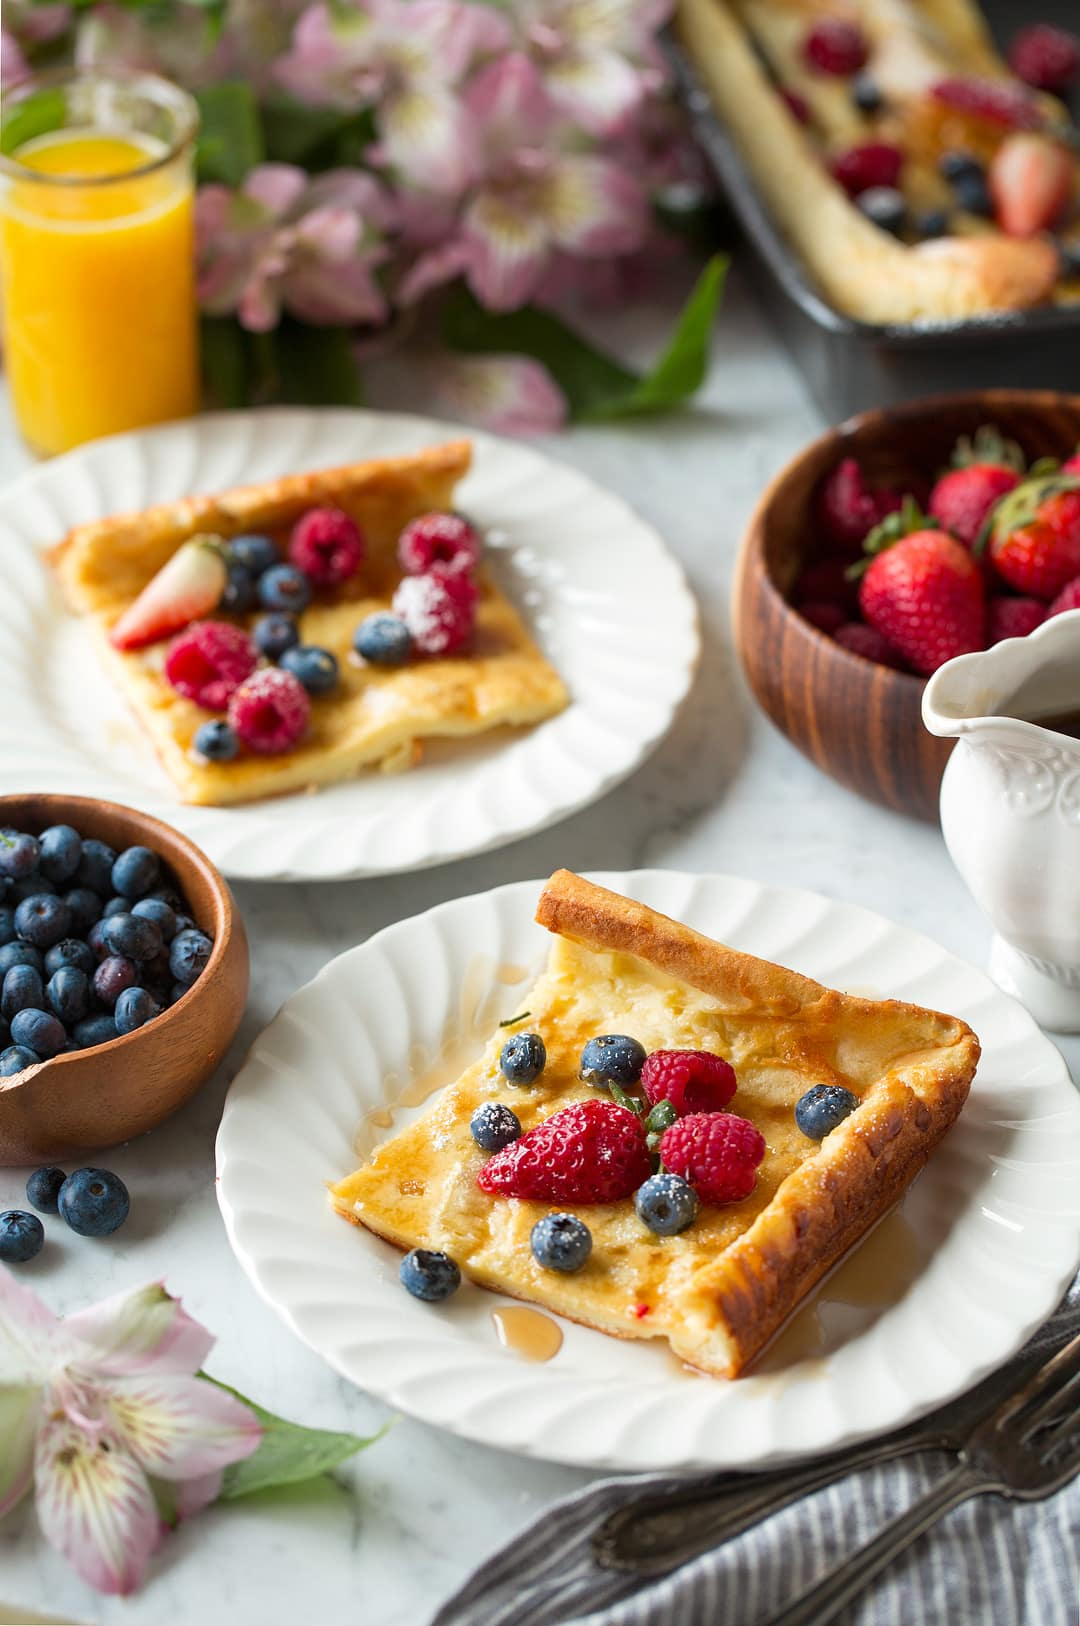 German Pancake slices on white plates with fresh fruit